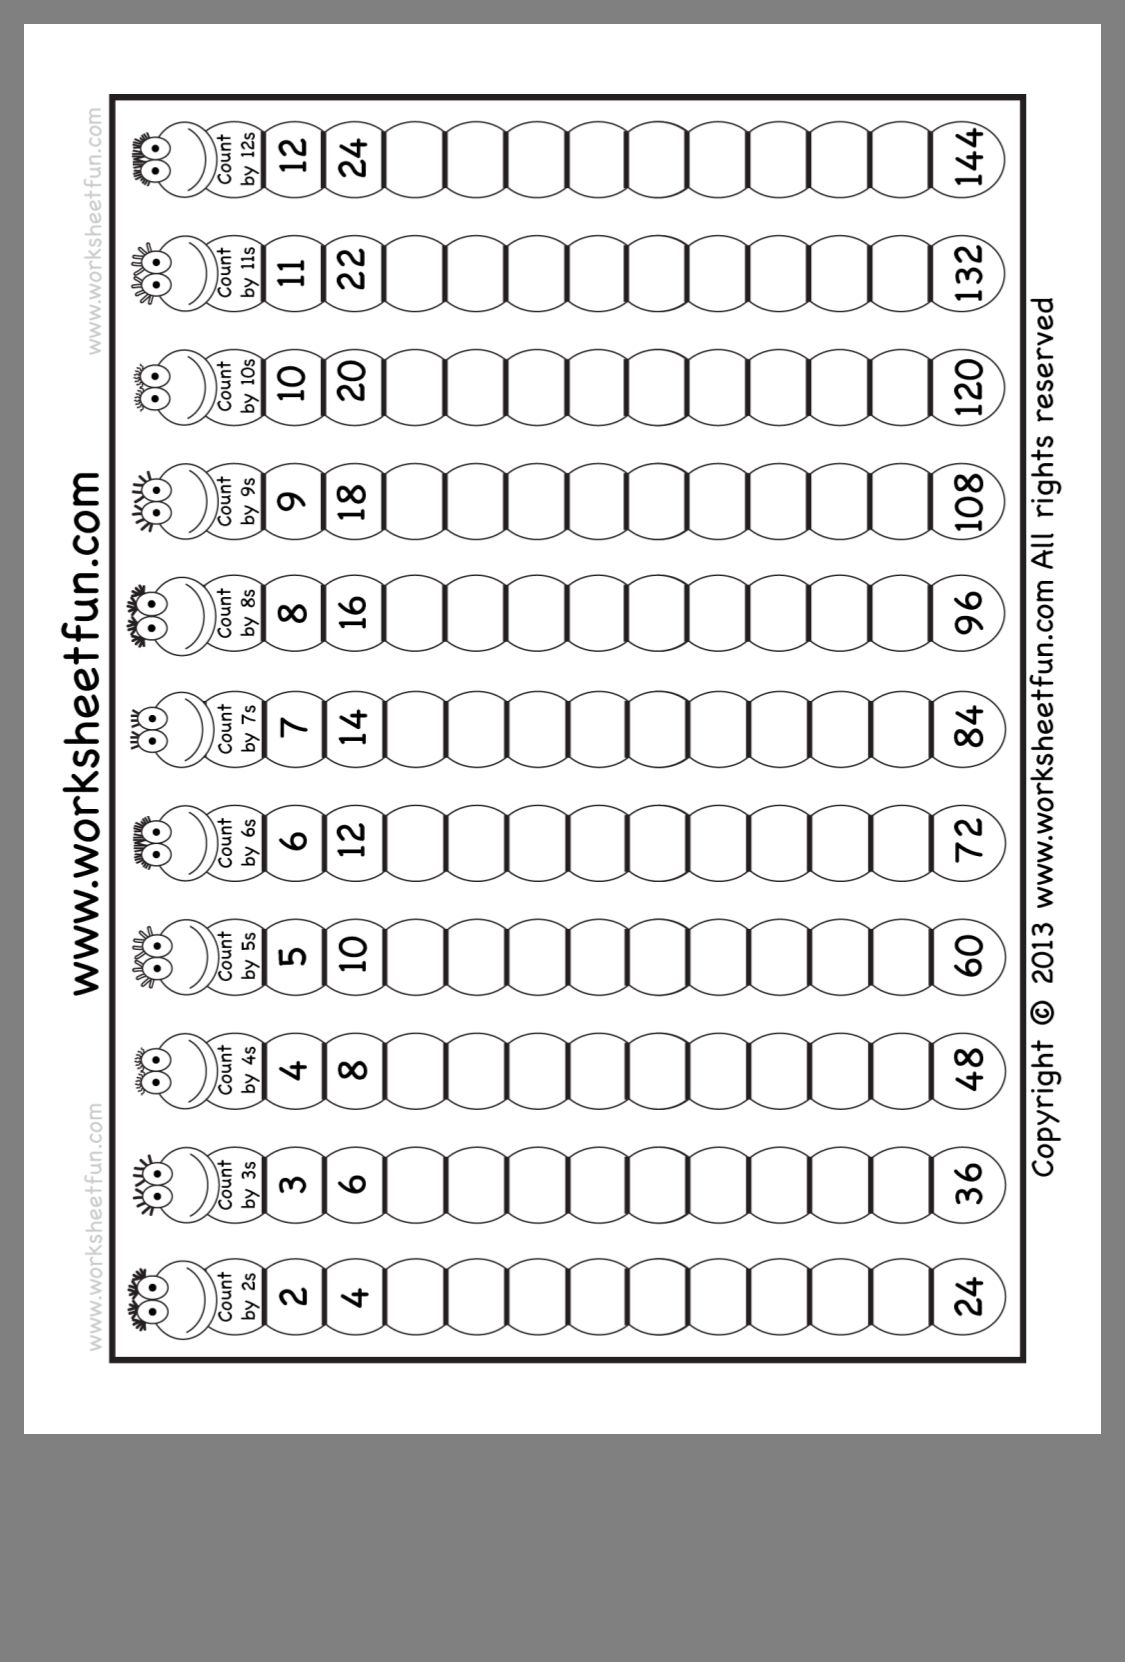 Pin By Lena Abcde On Tutoring Ideas Math Lessons 2nd Grade Math Worksheets Math Worksheets [ 1662 x 1125 Pixel ]